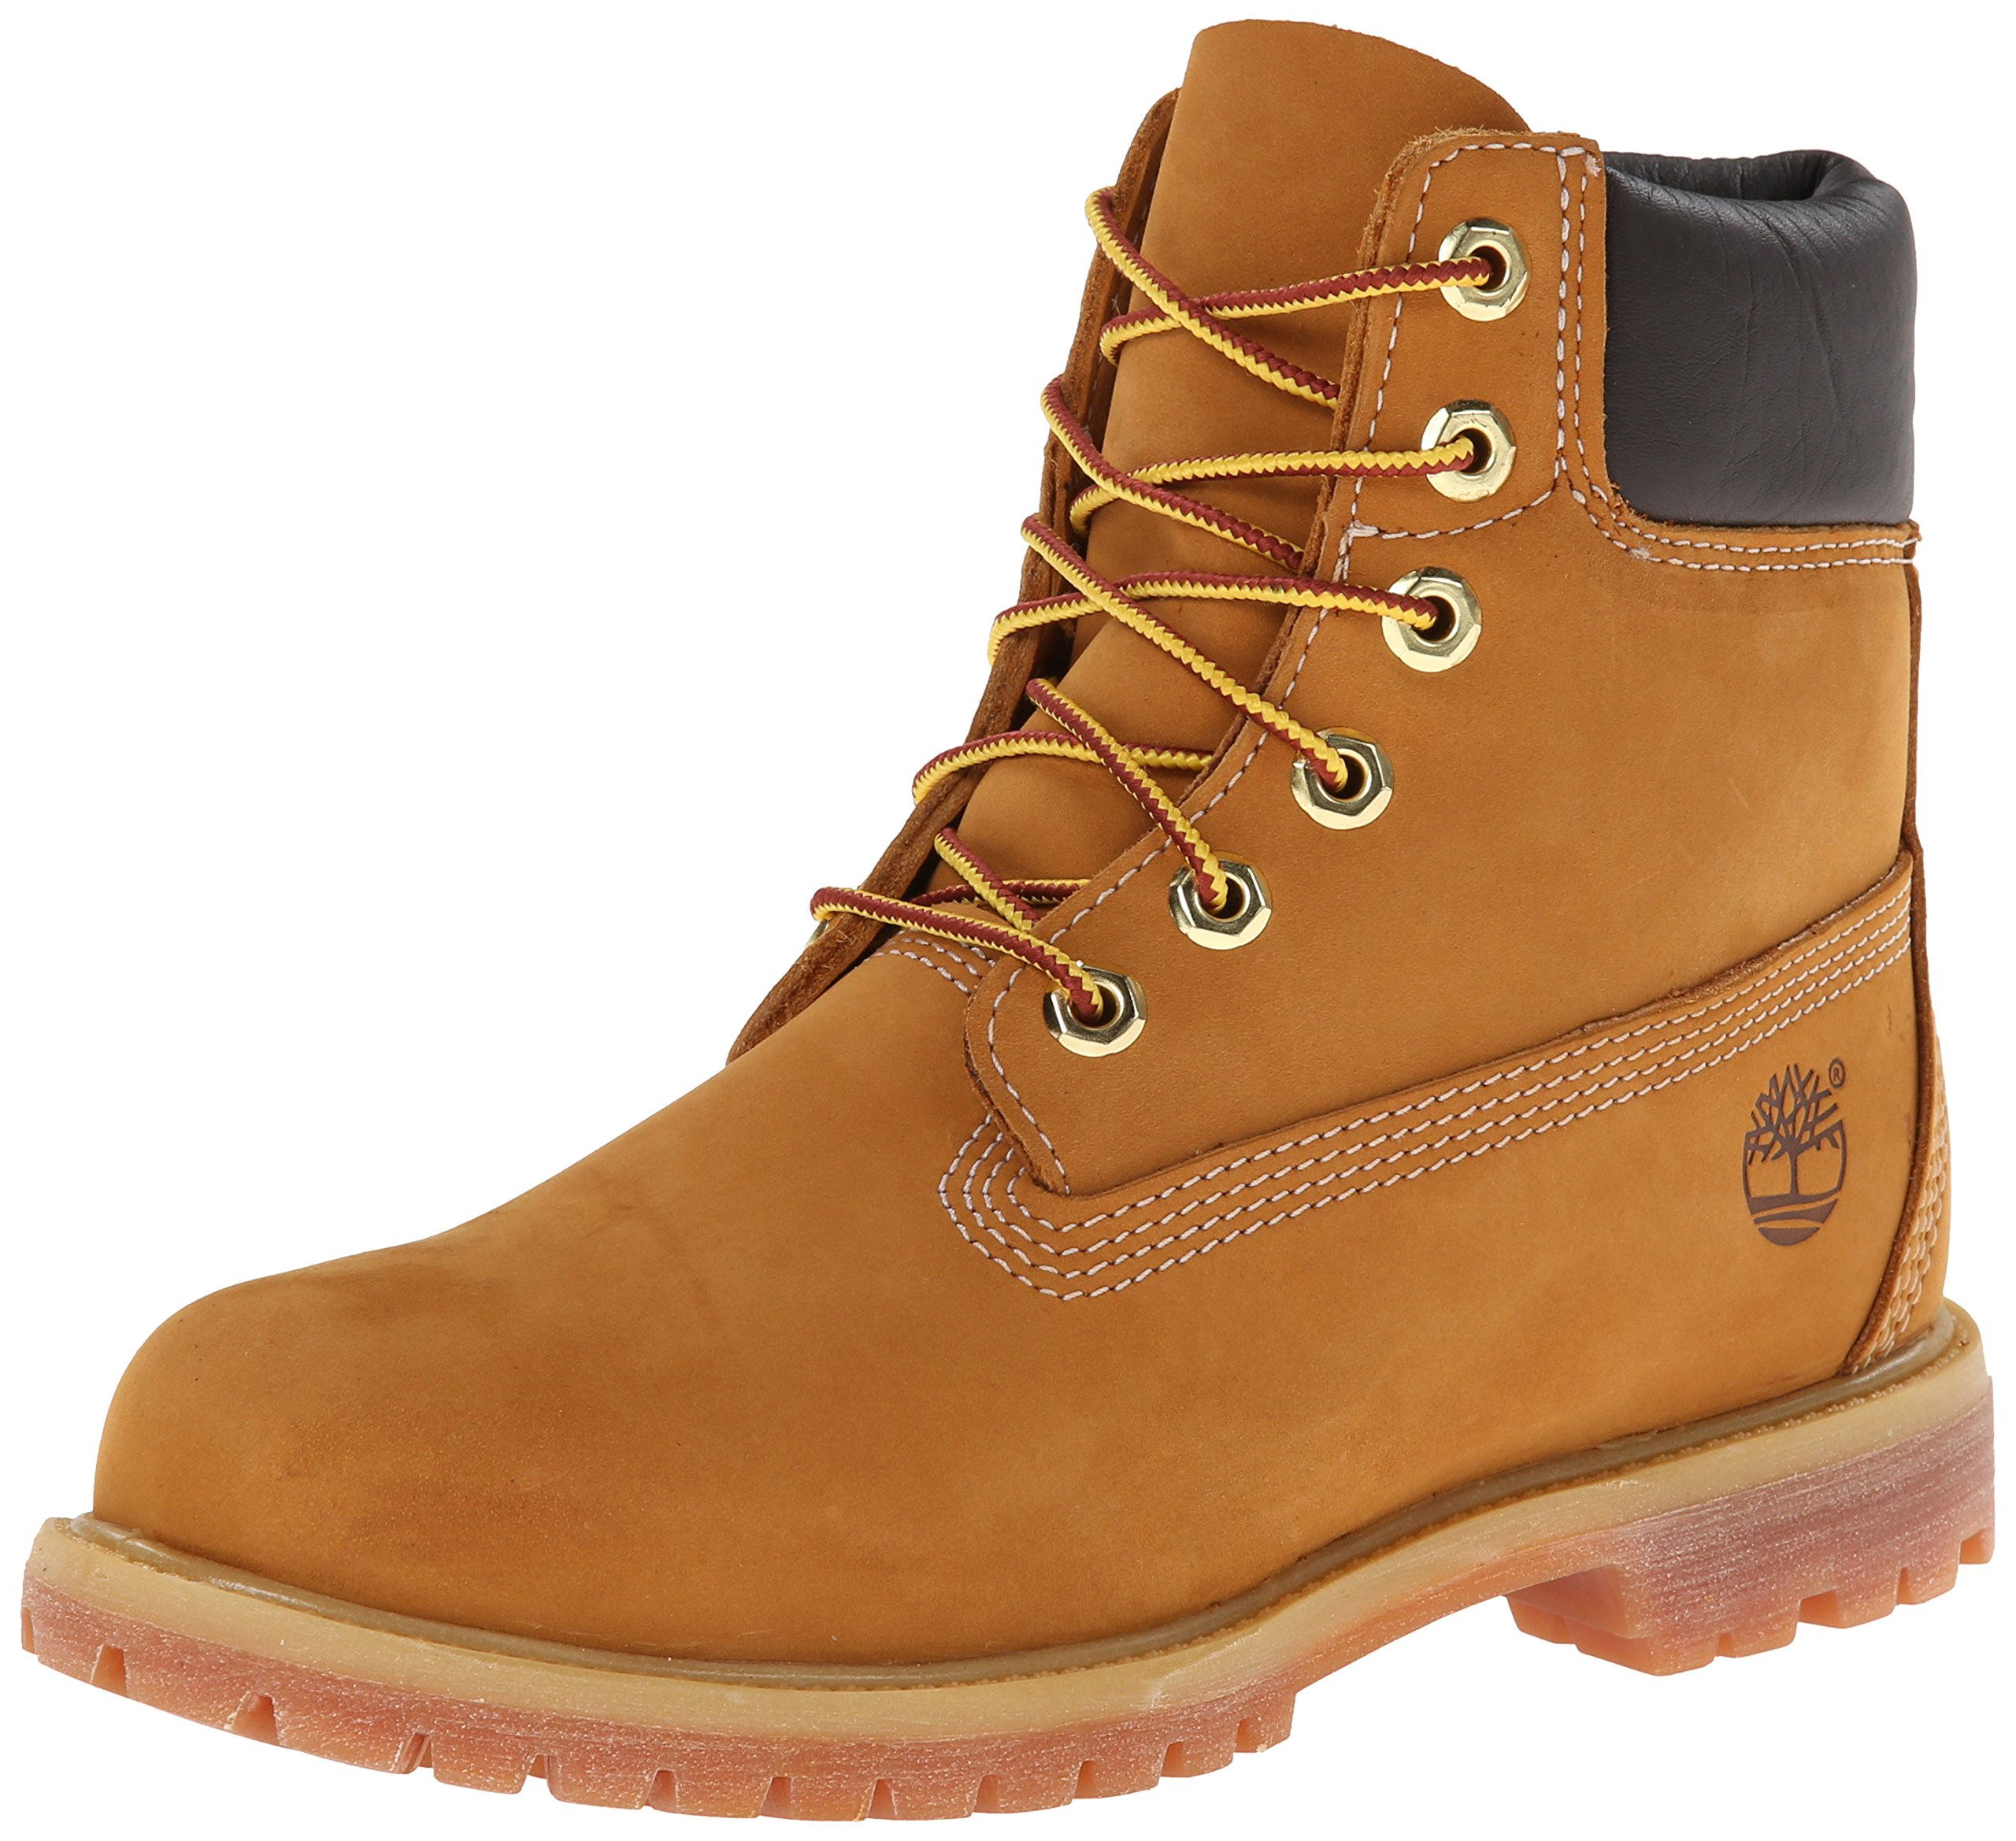 Timberland Women's 6-Inch Premium Boot,Wheat,8.5 W US